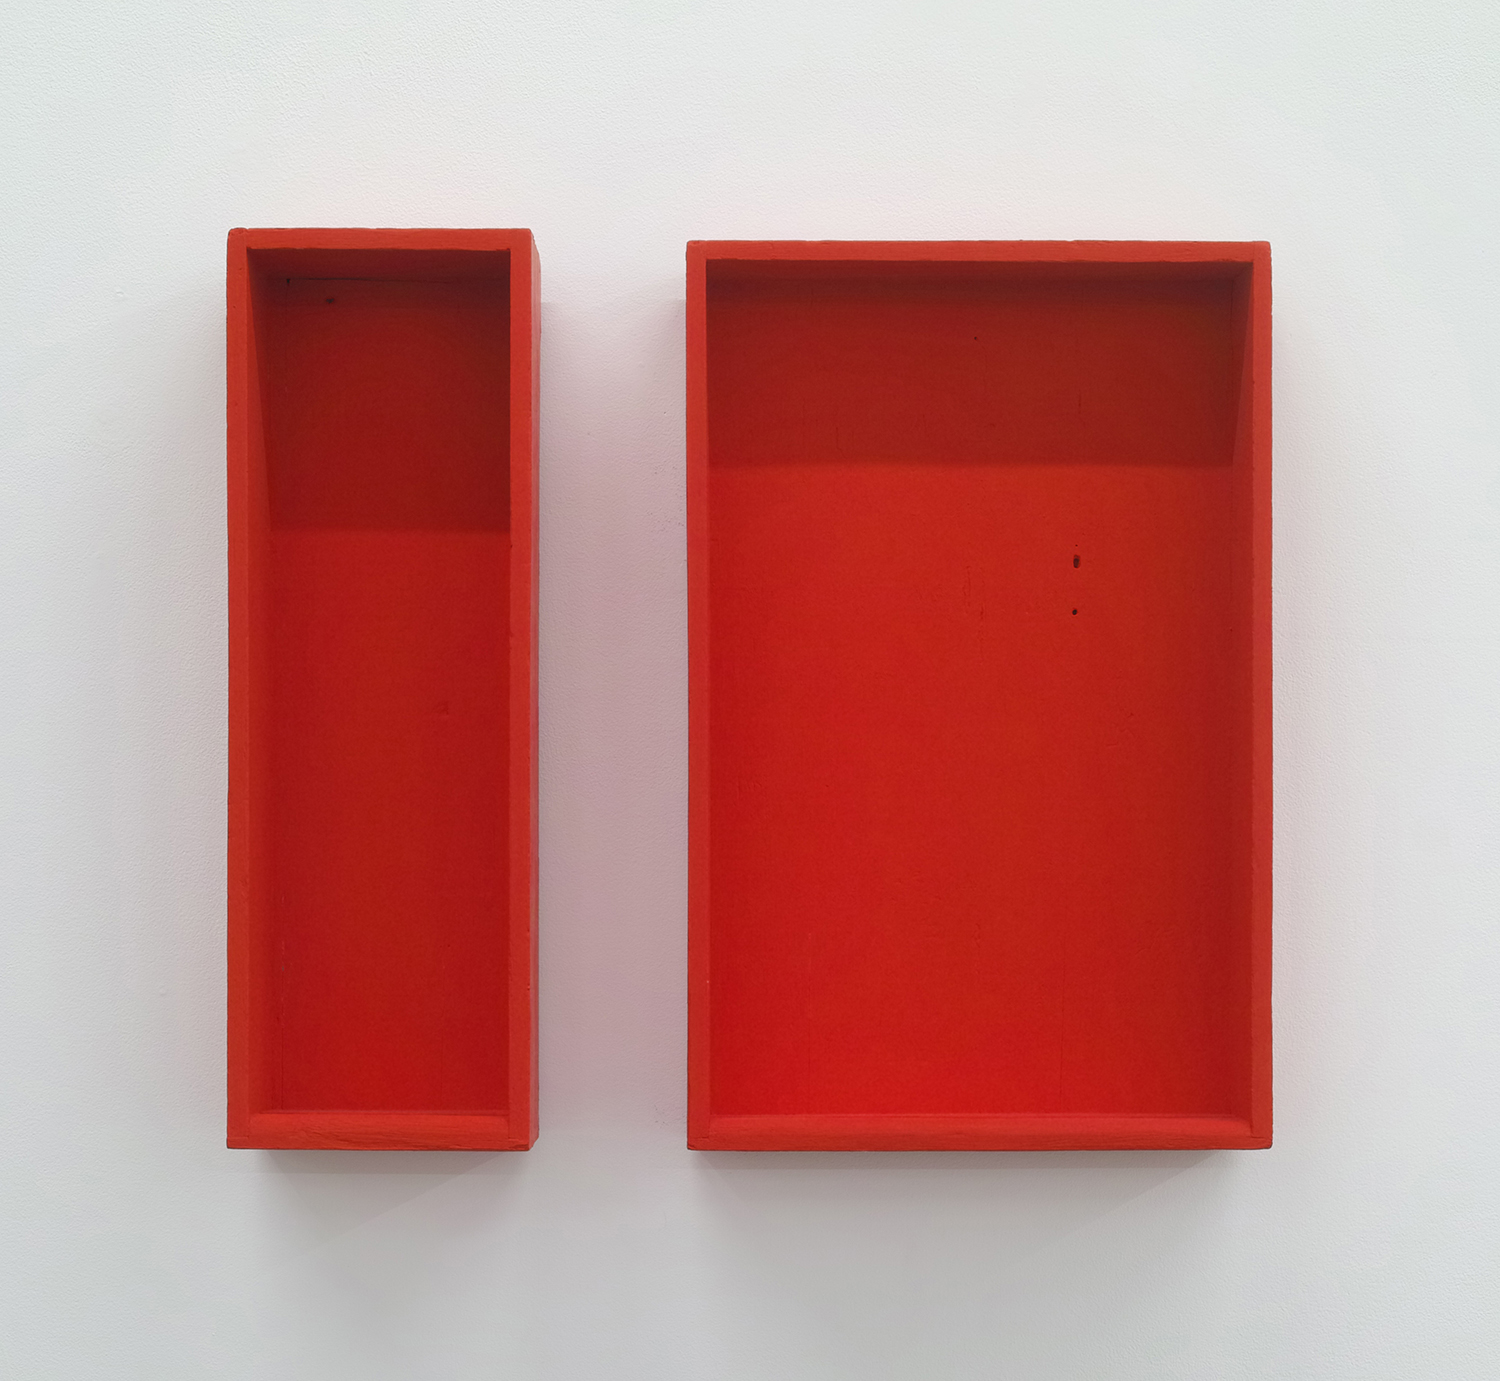 Text No. 14 & 13<br>acrylic on wood, set of 2<br>327 x 208 x 53 mm,  327 x 106 x 70 mm<br>1998